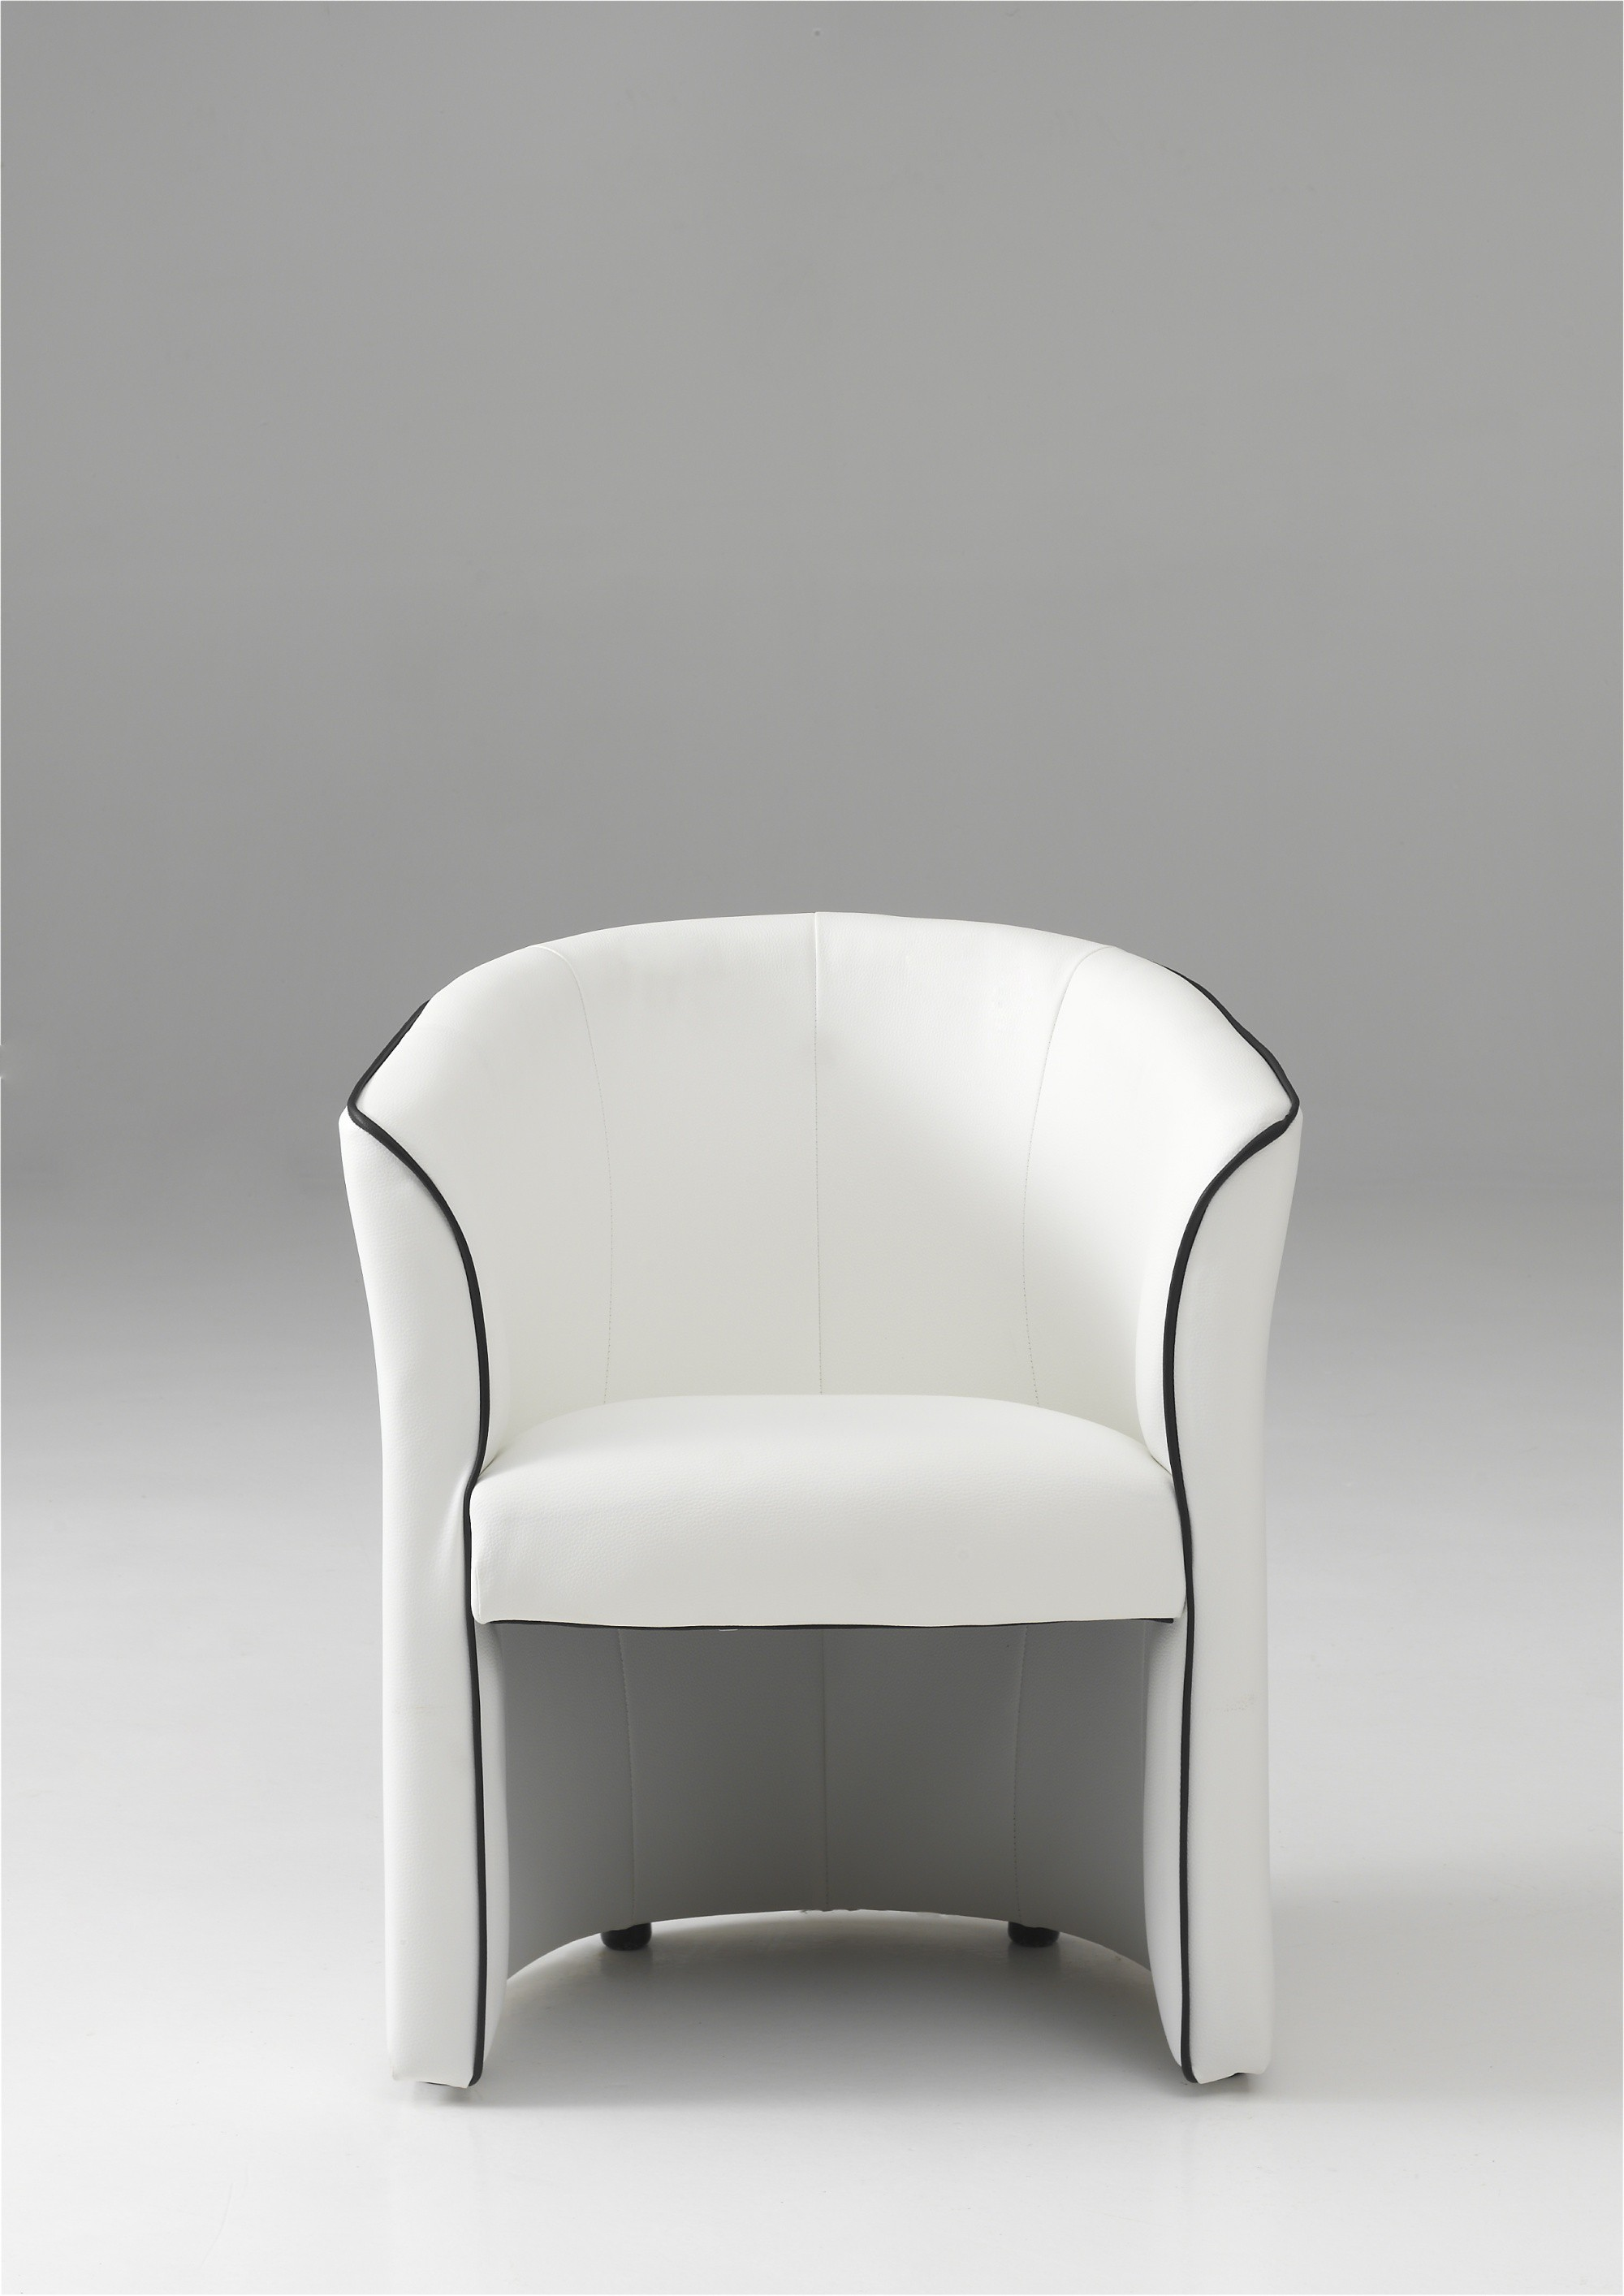 fauteuil blanc moderne id es de d coration int rieure french decor. Black Bedroom Furniture Sets. Home Design Ideas